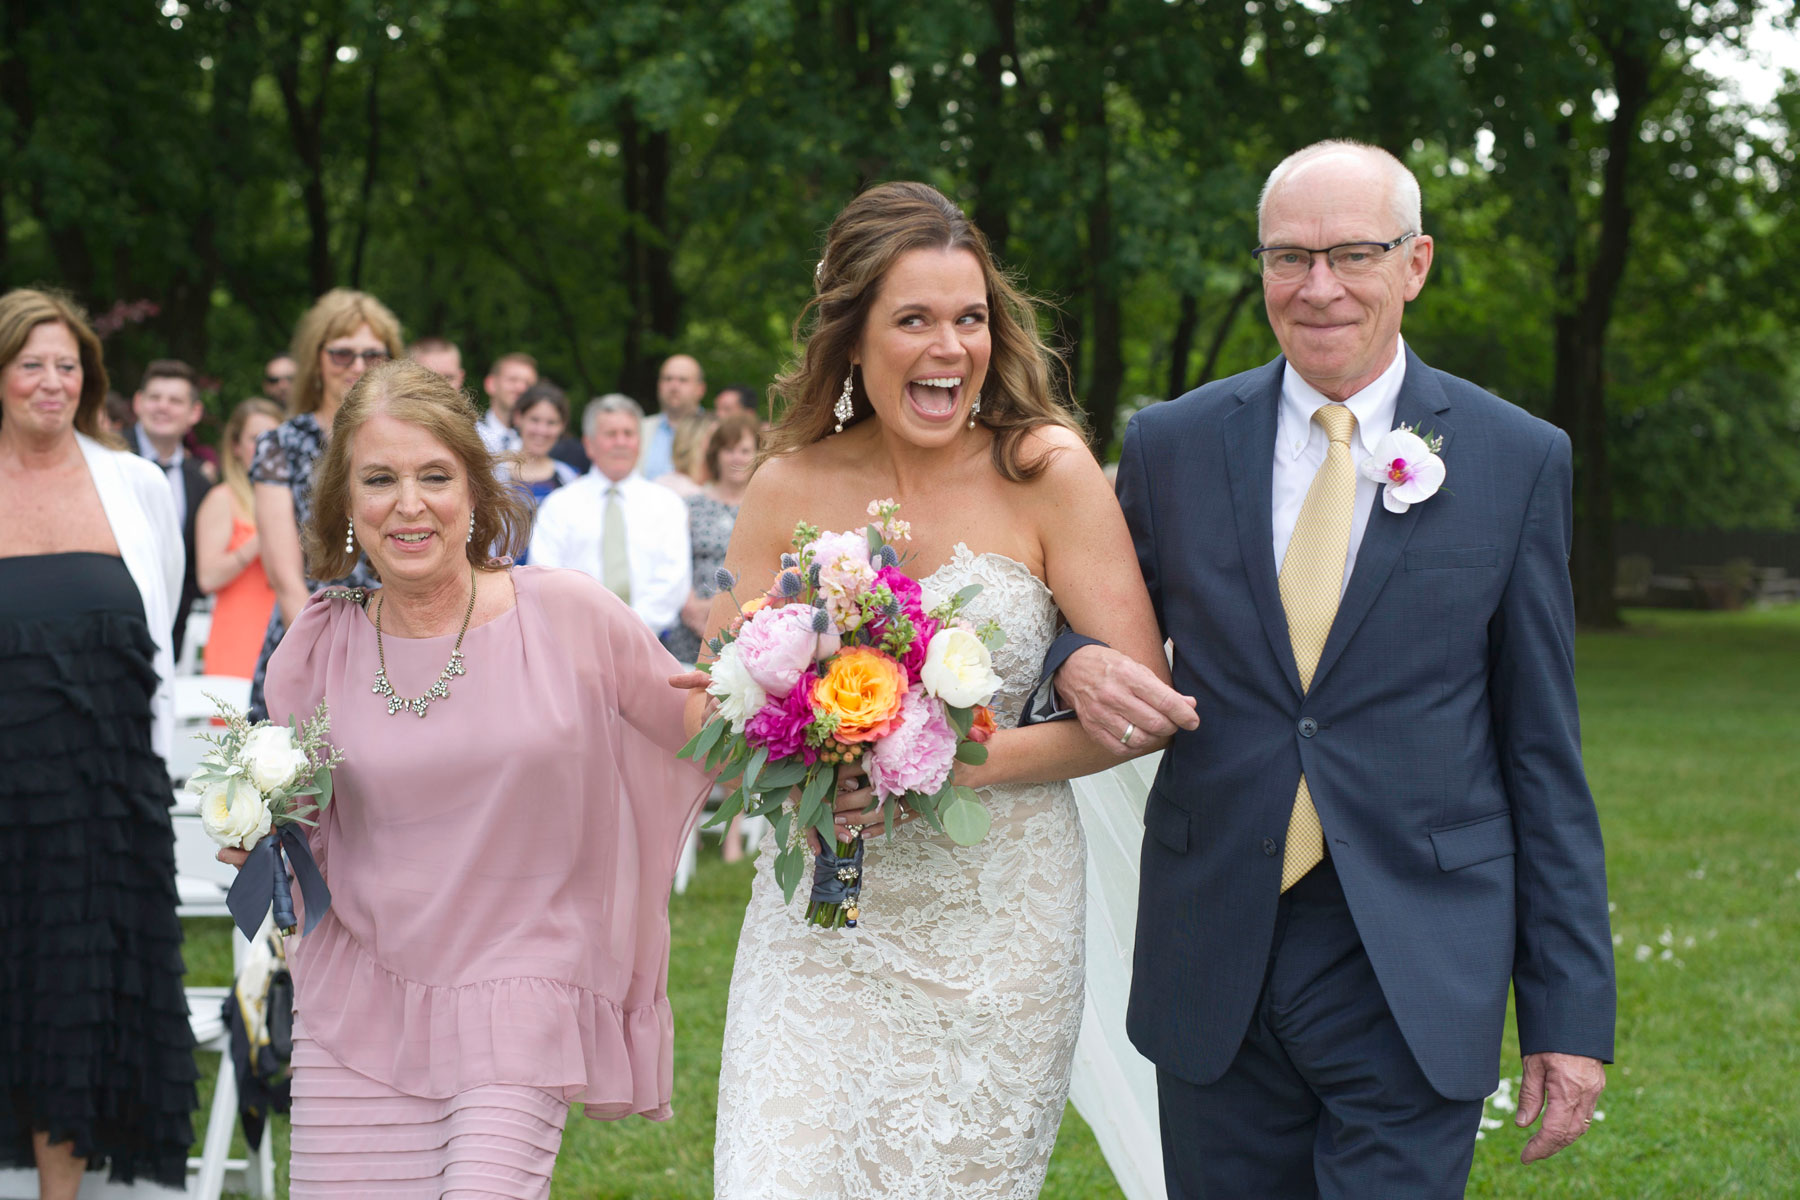 Bride gives her groom an excited look as she reaches the front of the aisle